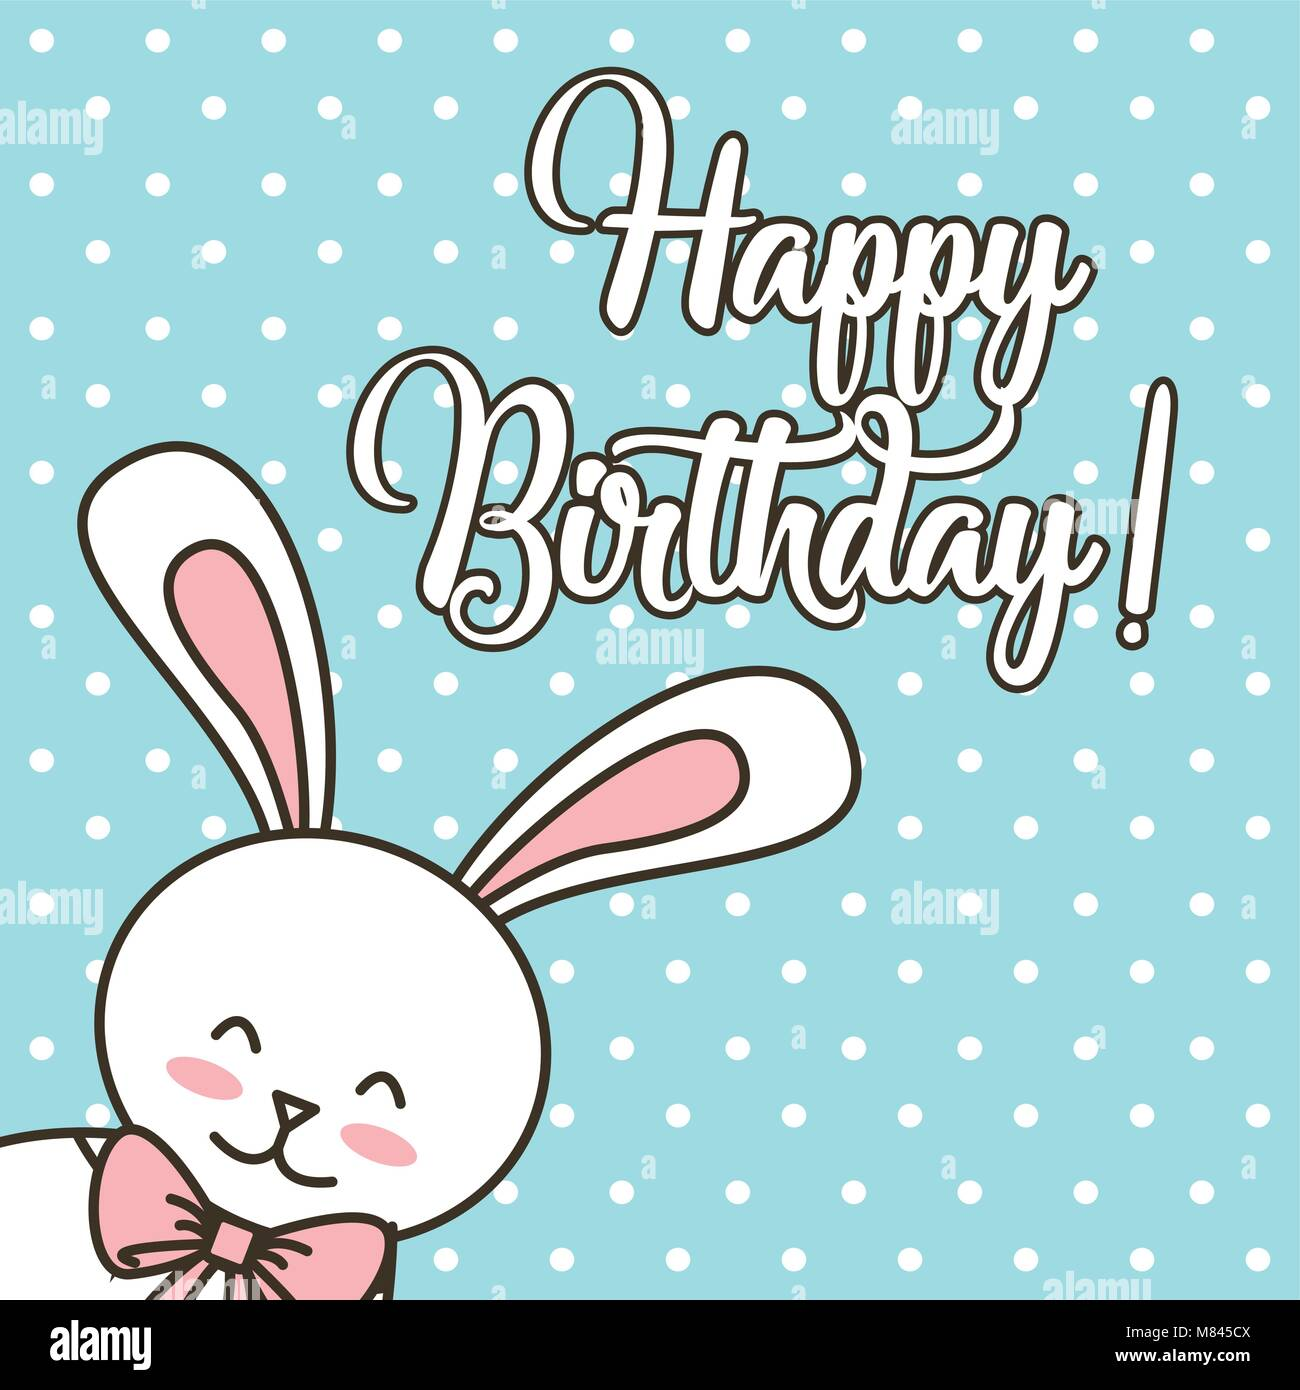 Happy Birthday Card Cartoon Cute Bunny With Bow Vector Illustration